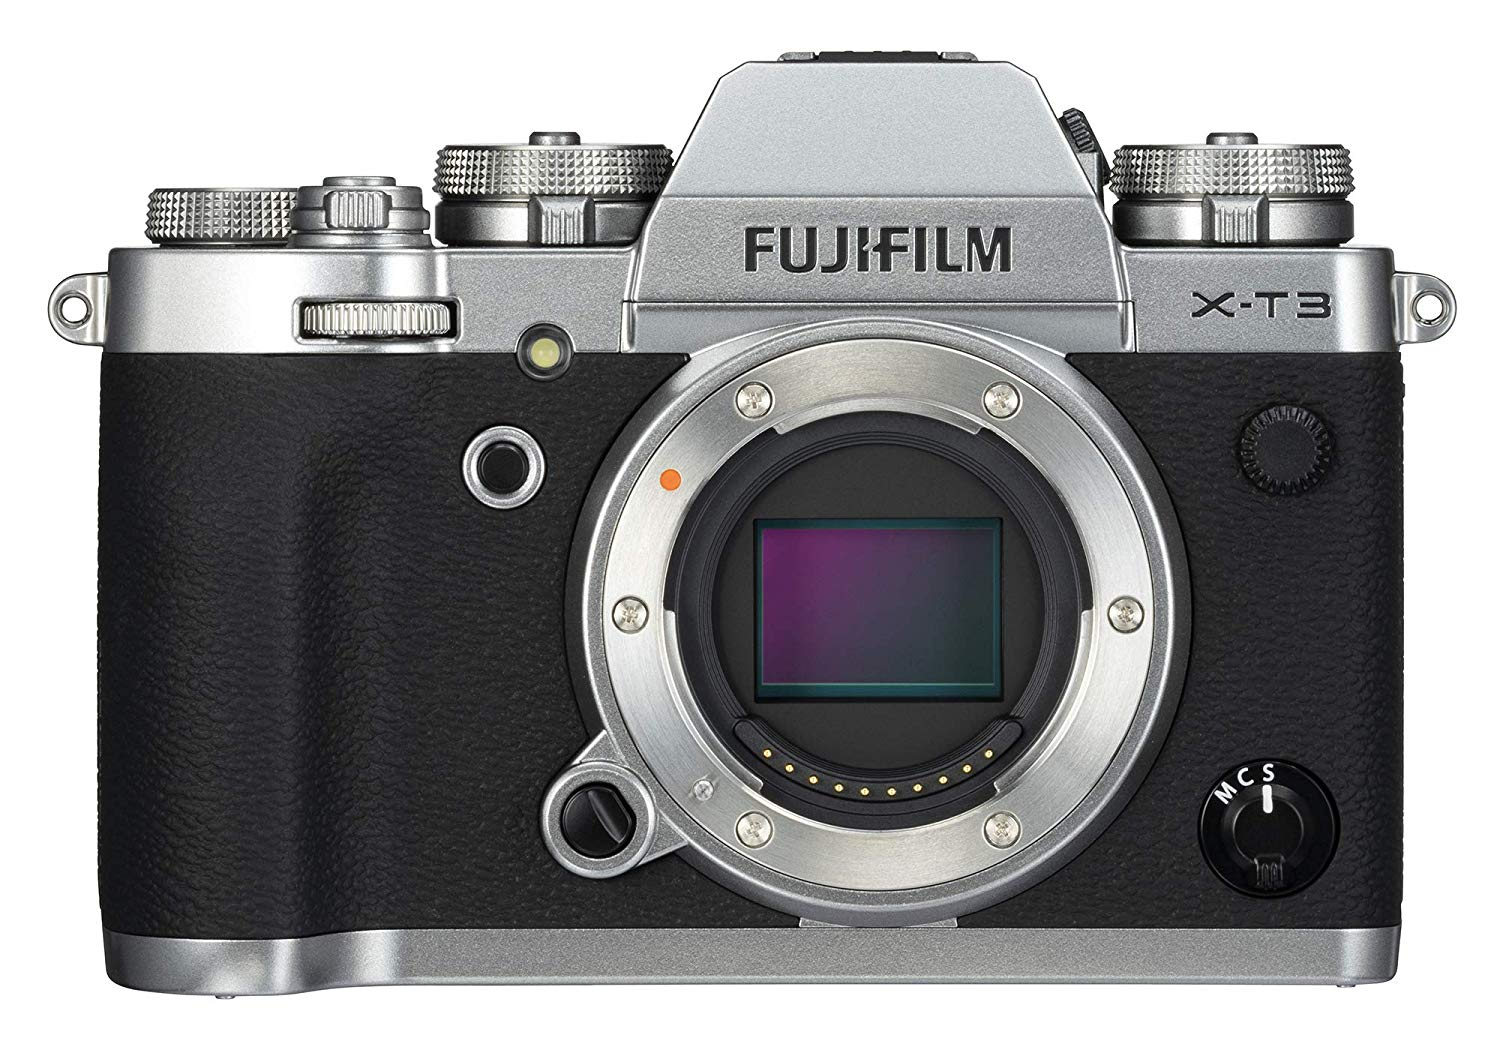 Fuji X-T3 - The X-T3 is Fuji's latest offering, and the advantages over the X-H1 are significant: 10-bit recording (64 times more color depth than the XT-2, FYI), 4K at 60FPS up to 400Mbs. But while the XT-3 has a better feature set, it doesn't have image stabilization – and Fuji lenses with OIS are hard to come by. In other words, you'll always need a gimbal with this one. Also note that there's slightly more crop at 4K compared the X-H1 (1.18x compared to the X-H1's 1.17x)…But don't get it wrong – this is a fantastic camera. It can outmatch the video quality and autofocus of the X-H1  – it's just slightly less convenient. But it's also lighter, smaller, and more portable, which is ideal for a versatile video and still camera intended to be by your side as often as possible.If video capabilities are important to you and you don't mind relying on a gimbal, this is the camera for you.